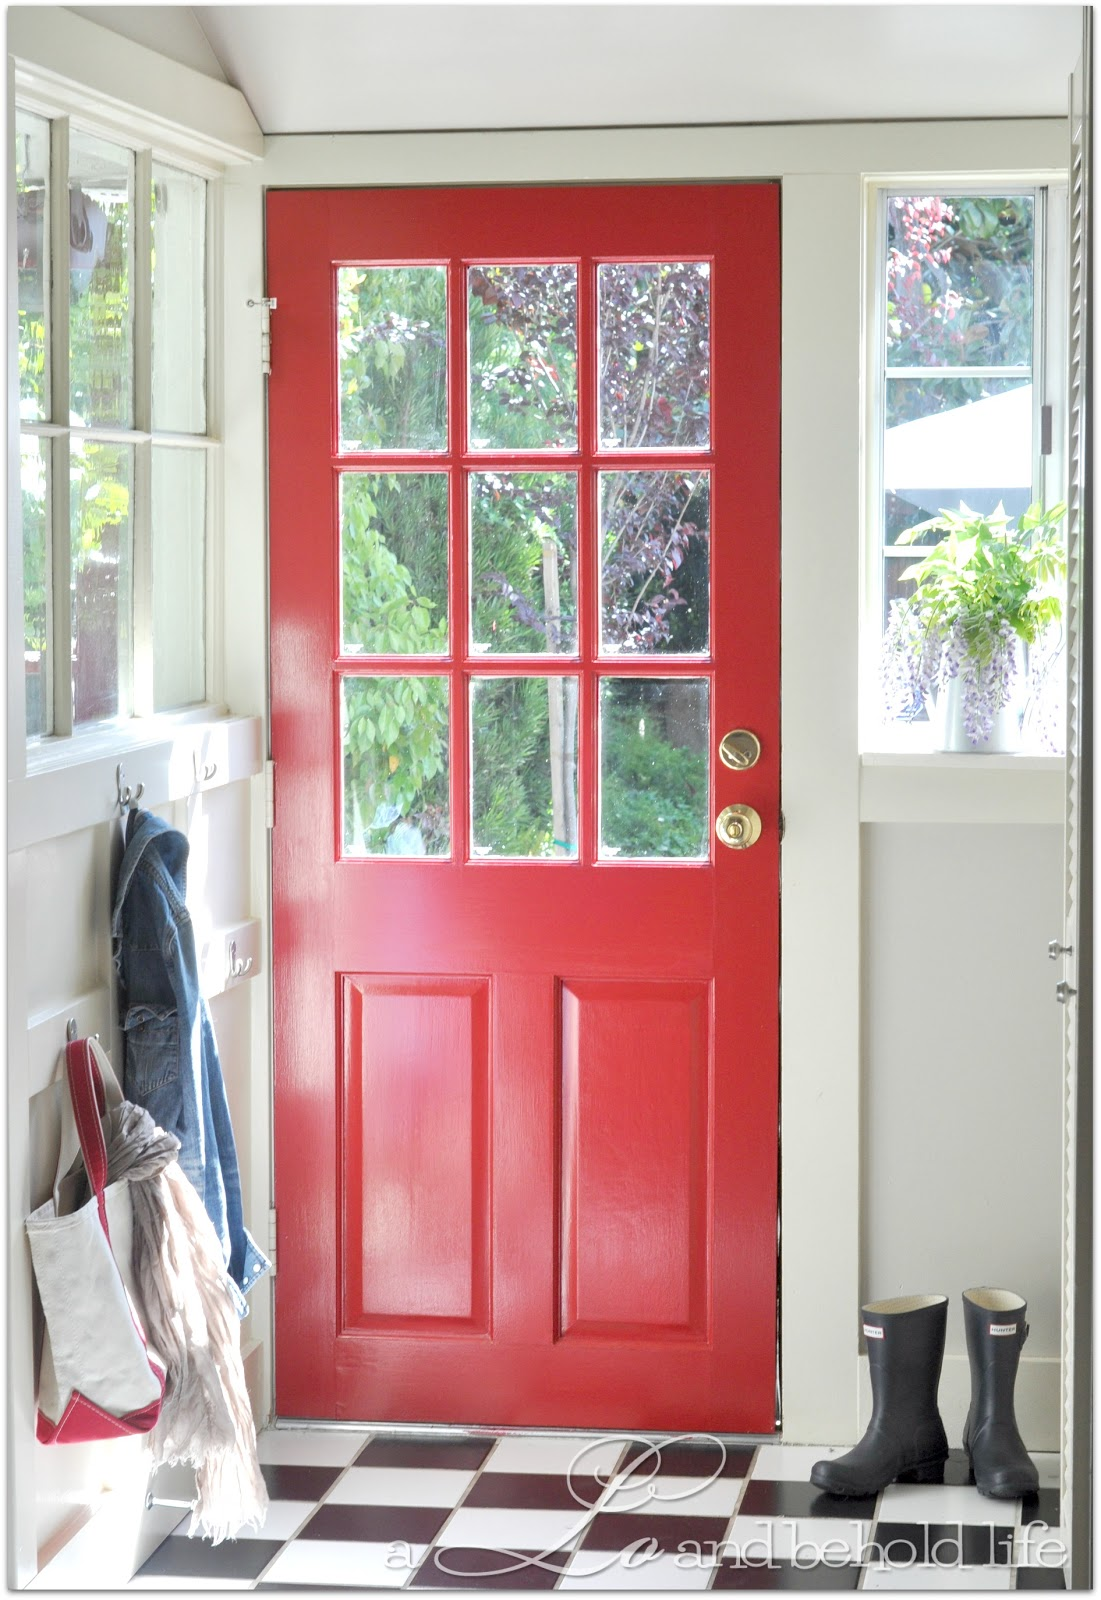 Flamenco red kitchen door a lo and behold life for Kitchen doors